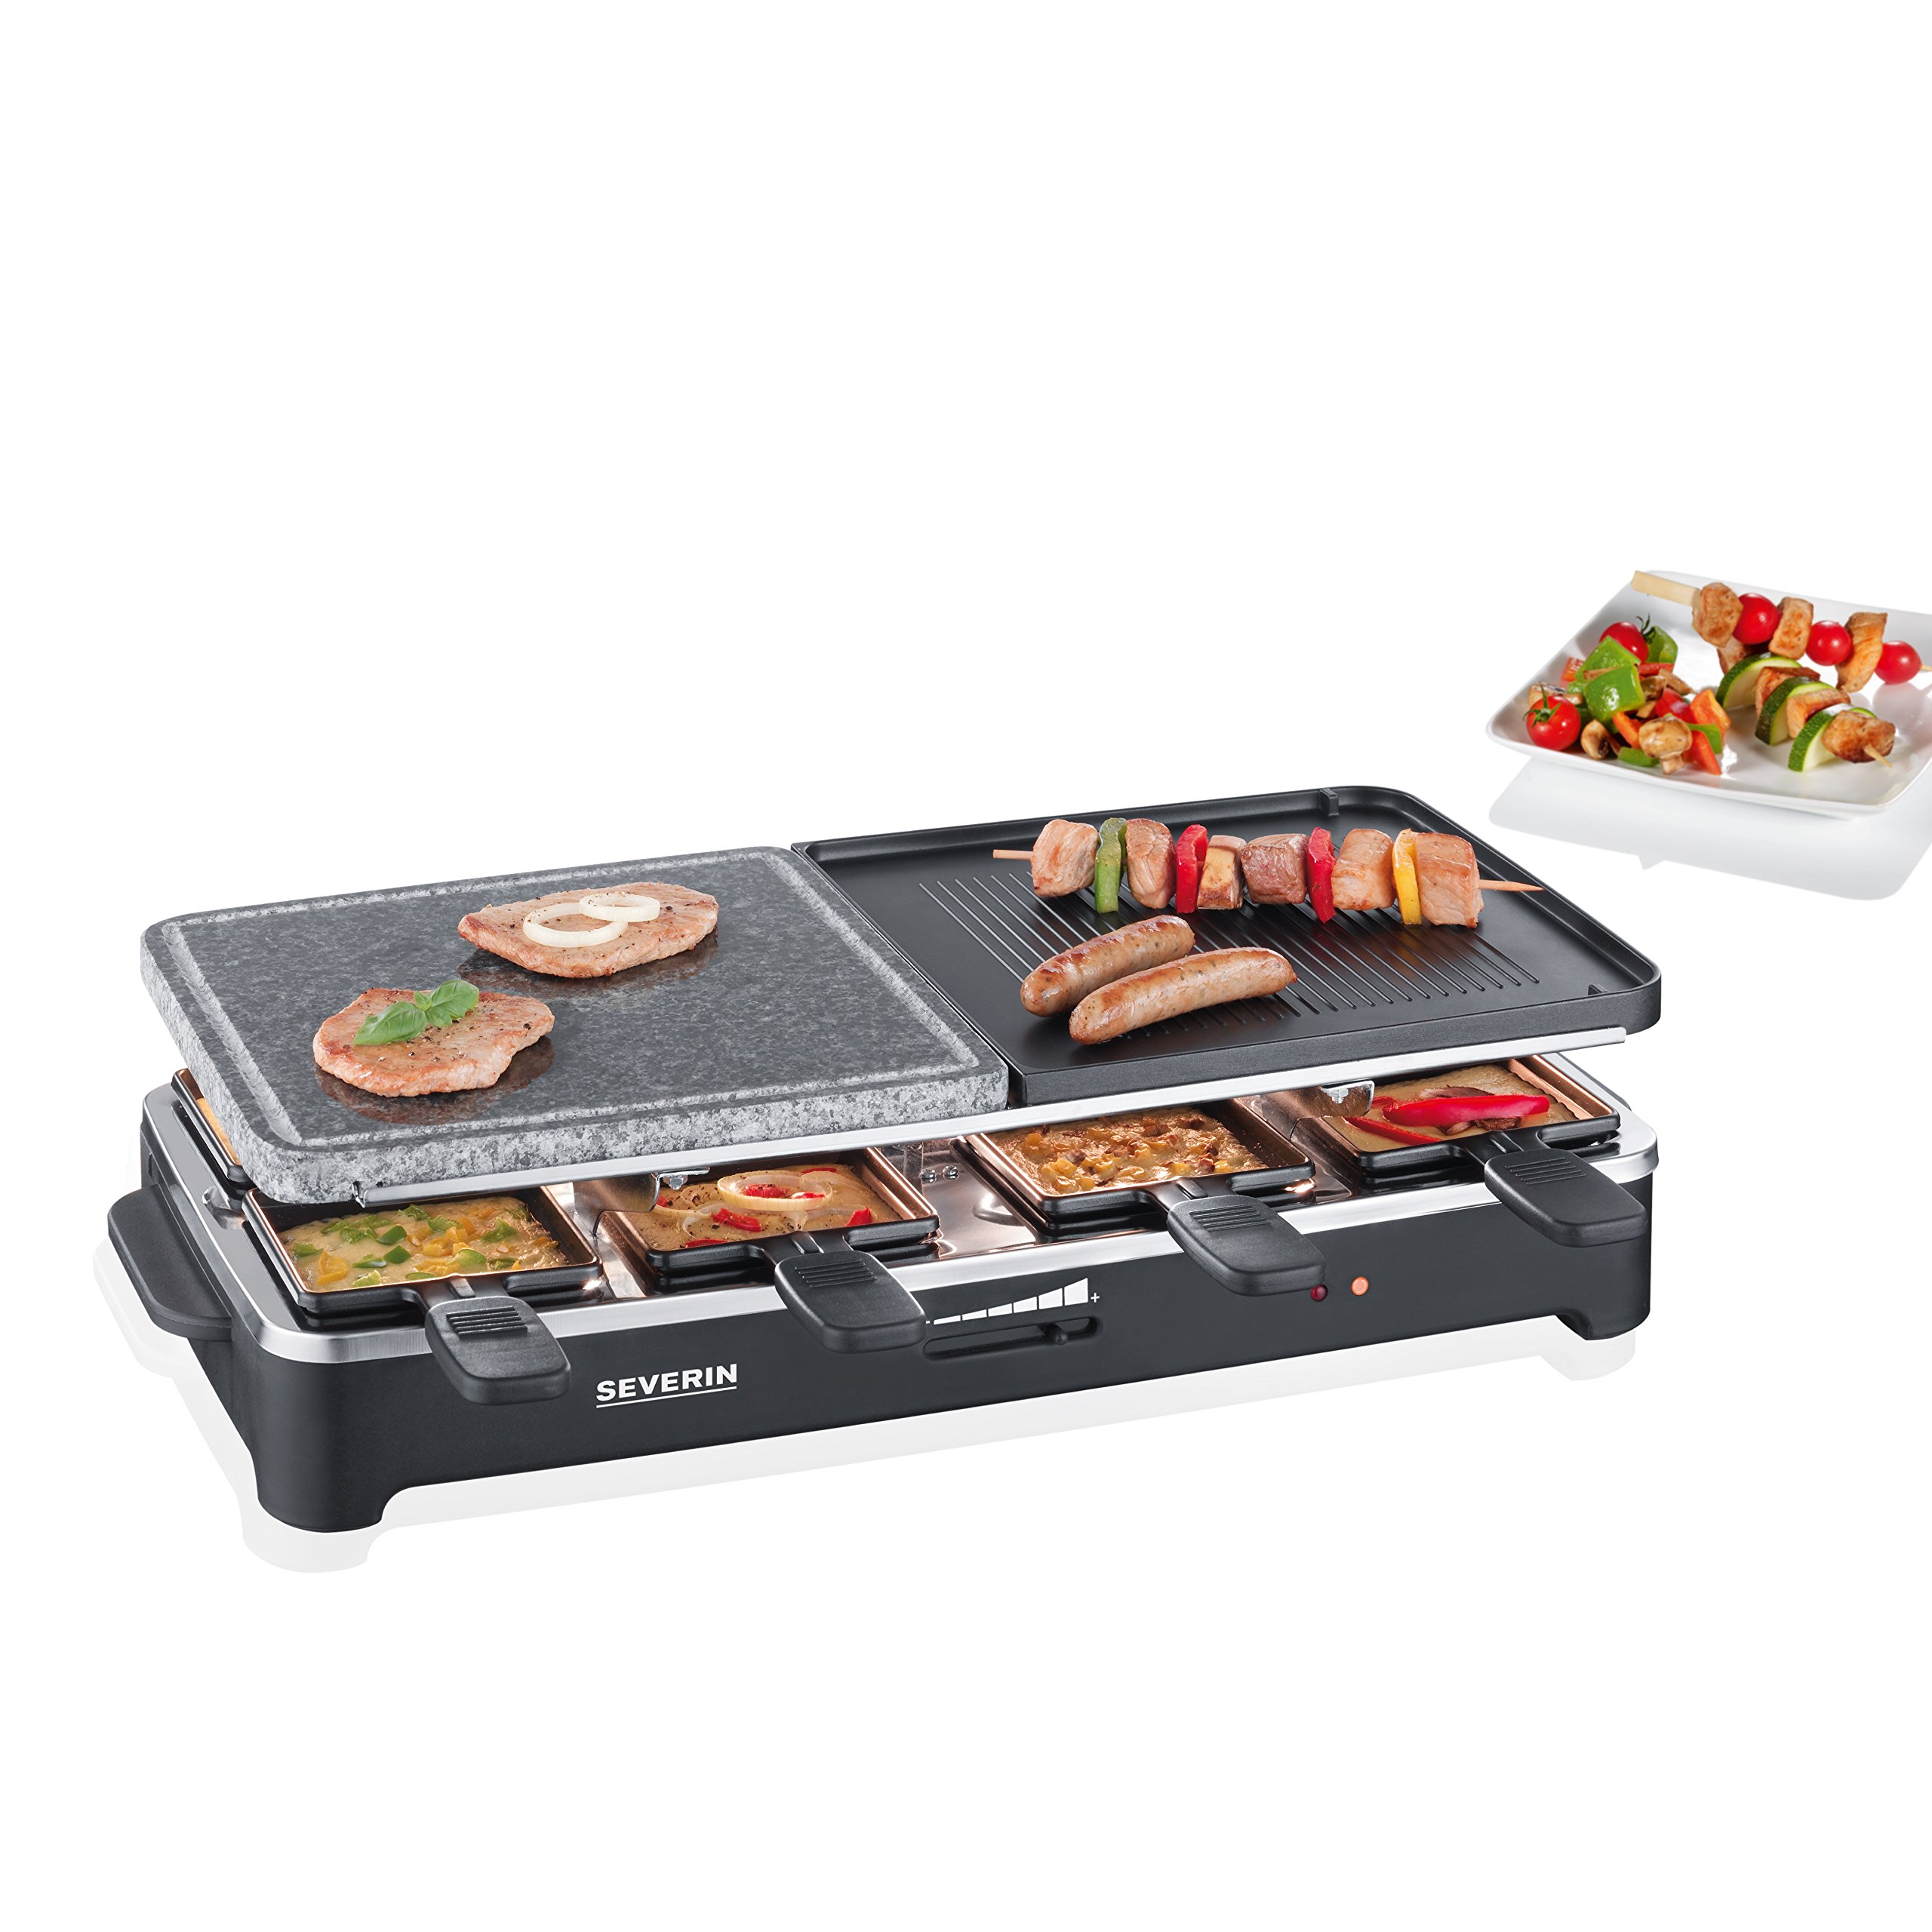 appareil raclette 8 personnes gril cr pes pierre cuisson barbecue cuisine hiver ebay. Black Bedroom Furniture Sets. Home Design Ideas